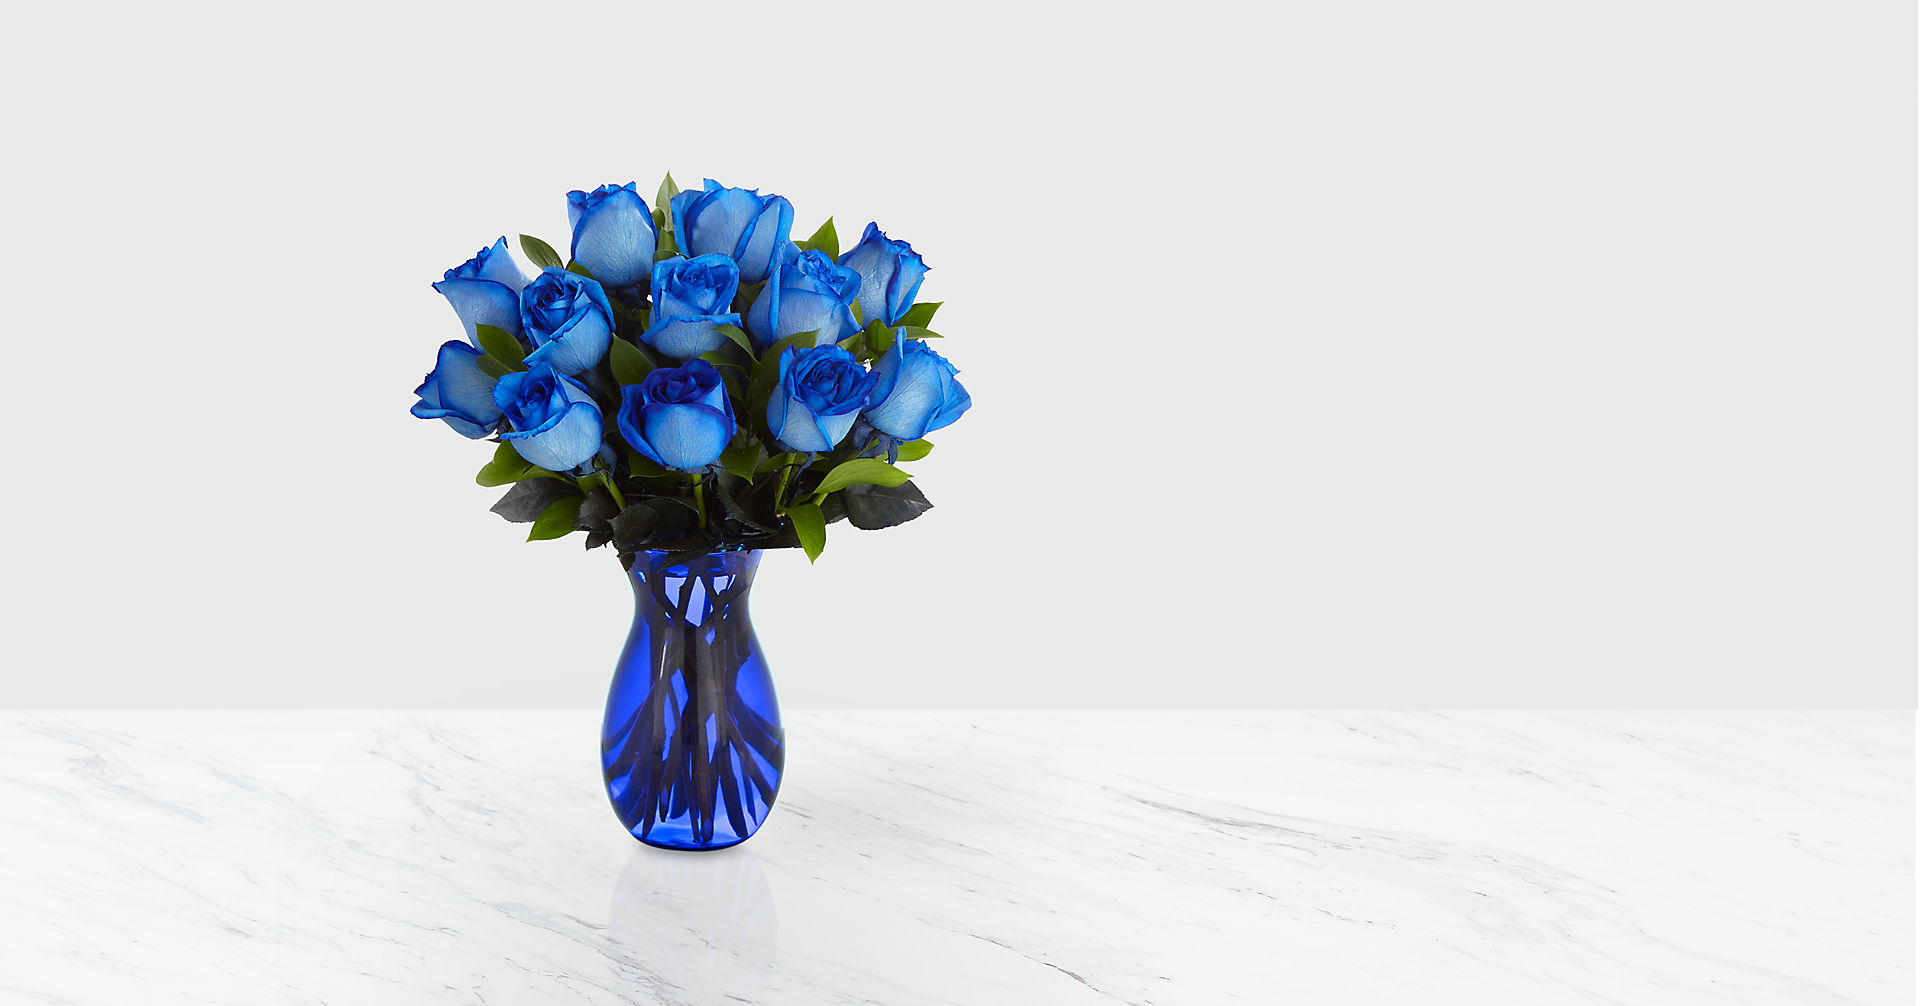 Extreme Blue Hues Fiesta Rose Bouquet - 12 Stems - VASE INCLUDED - Image 1 Of 2